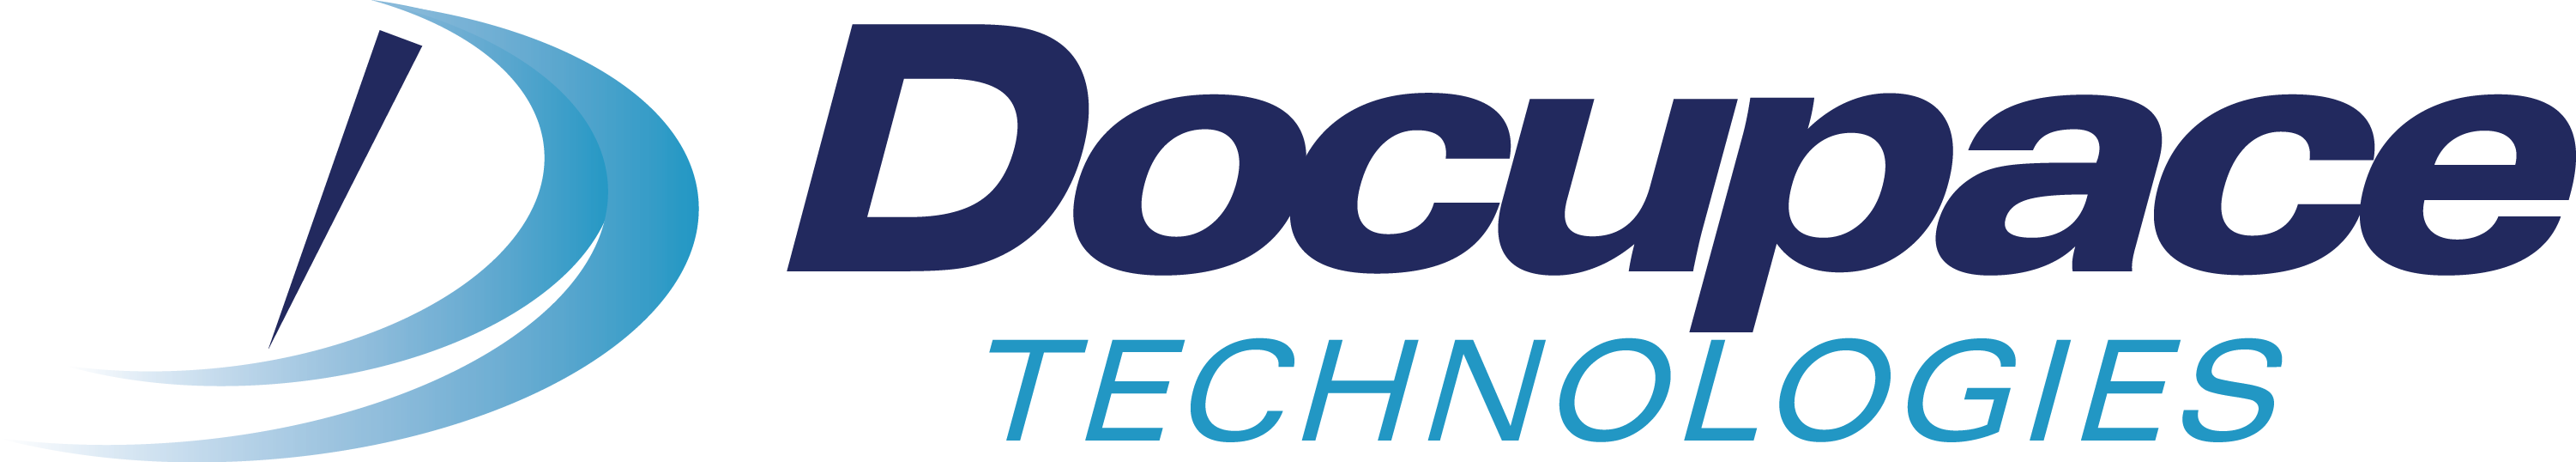 Docupace-1